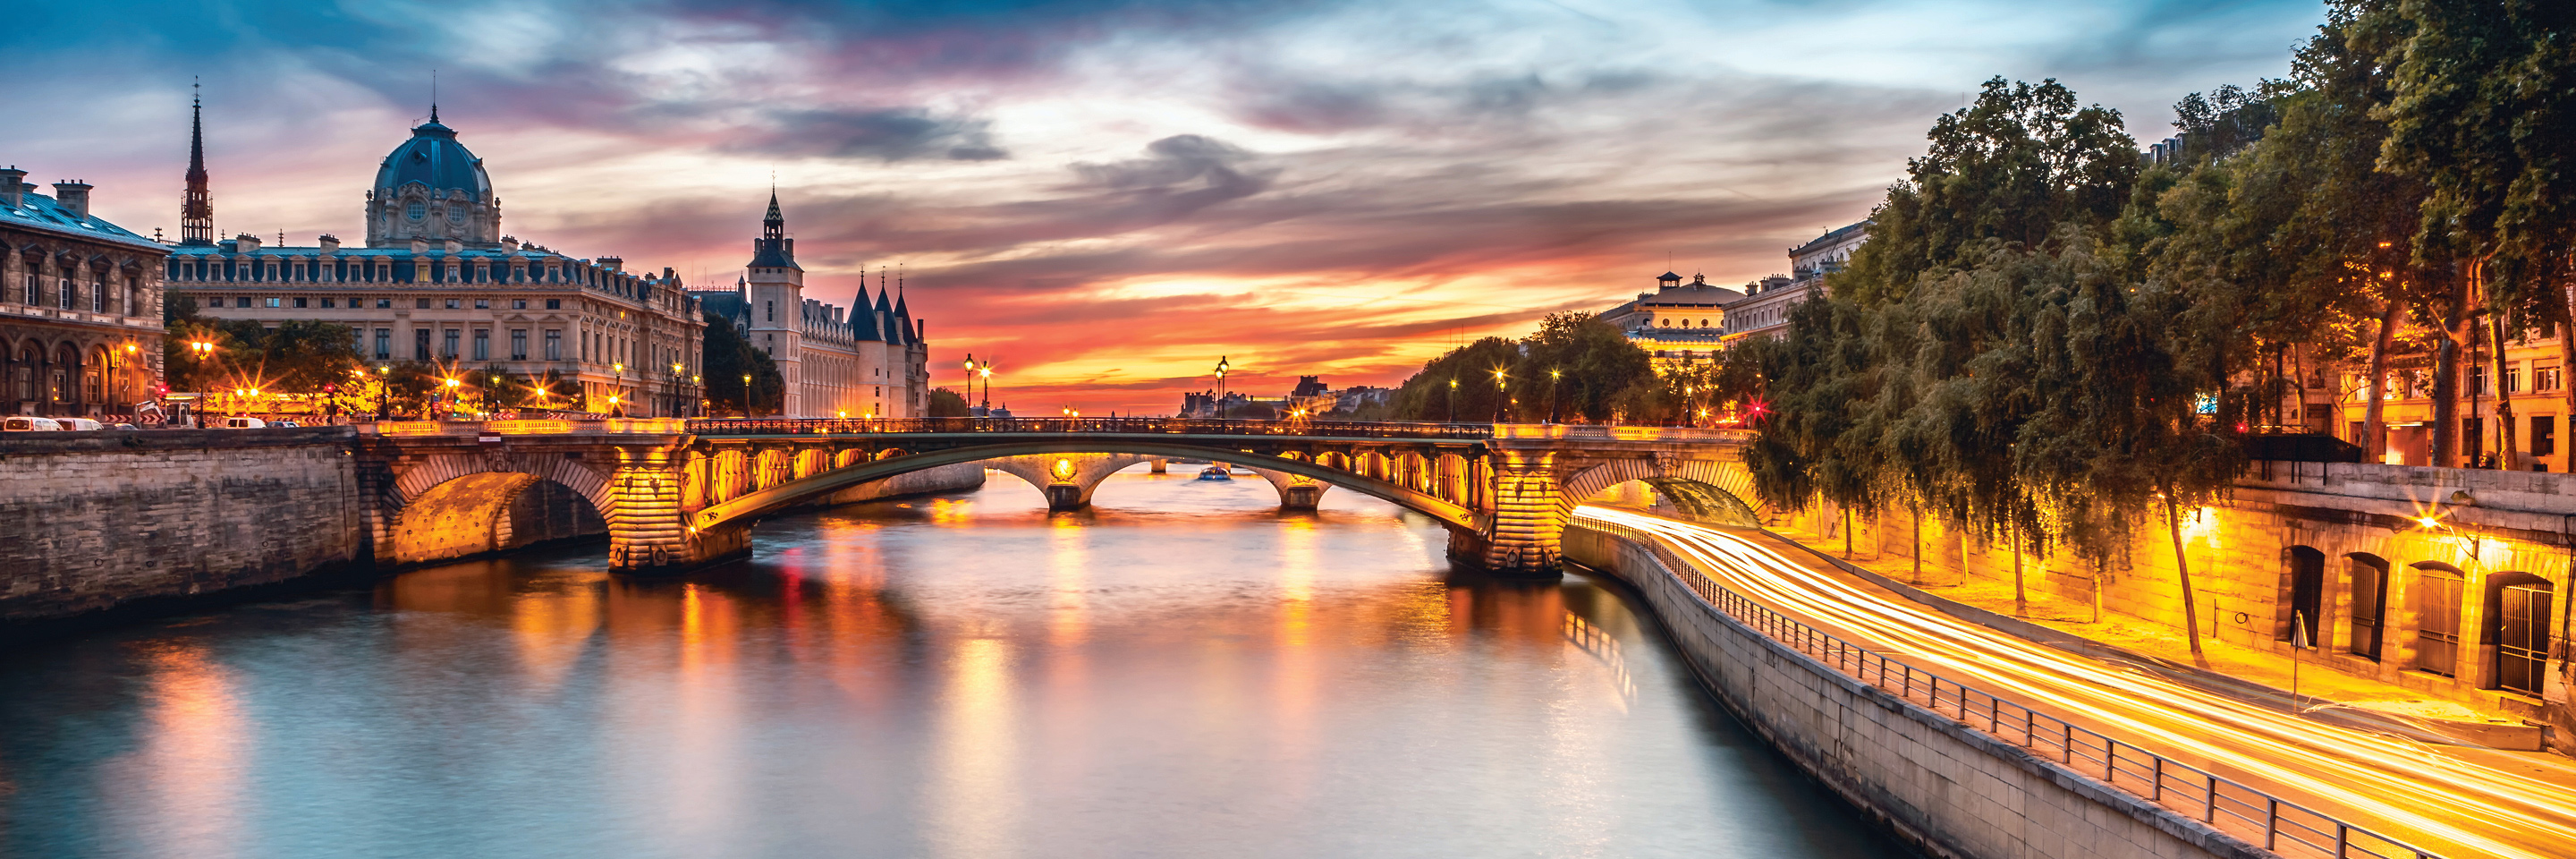 Tulip Time Cruise with 3 Nights in Paris